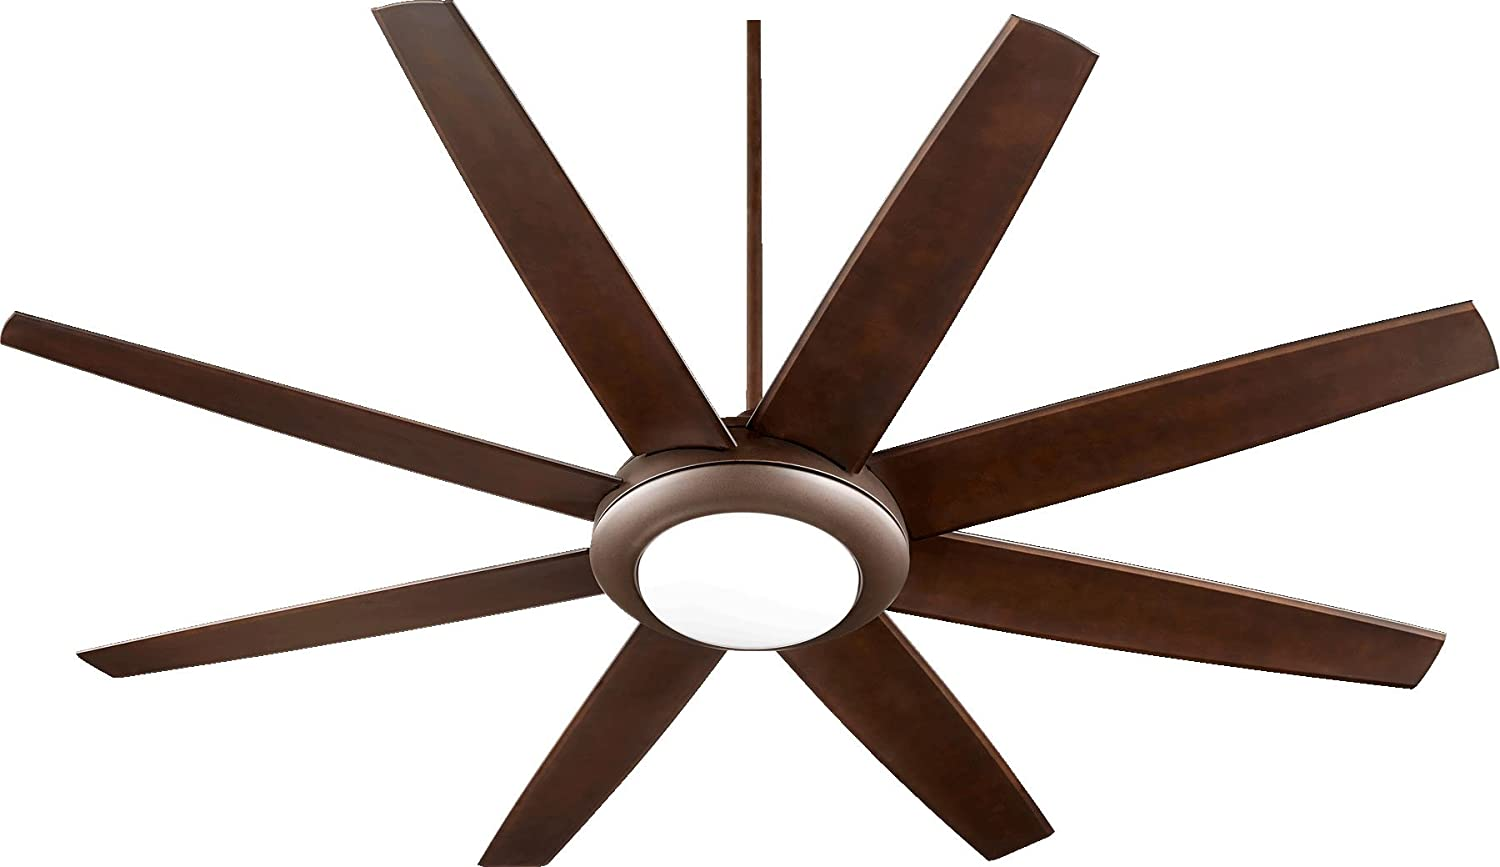 lights img index commercial ceiling air inch fan industrial fans brushed nickel grade with big